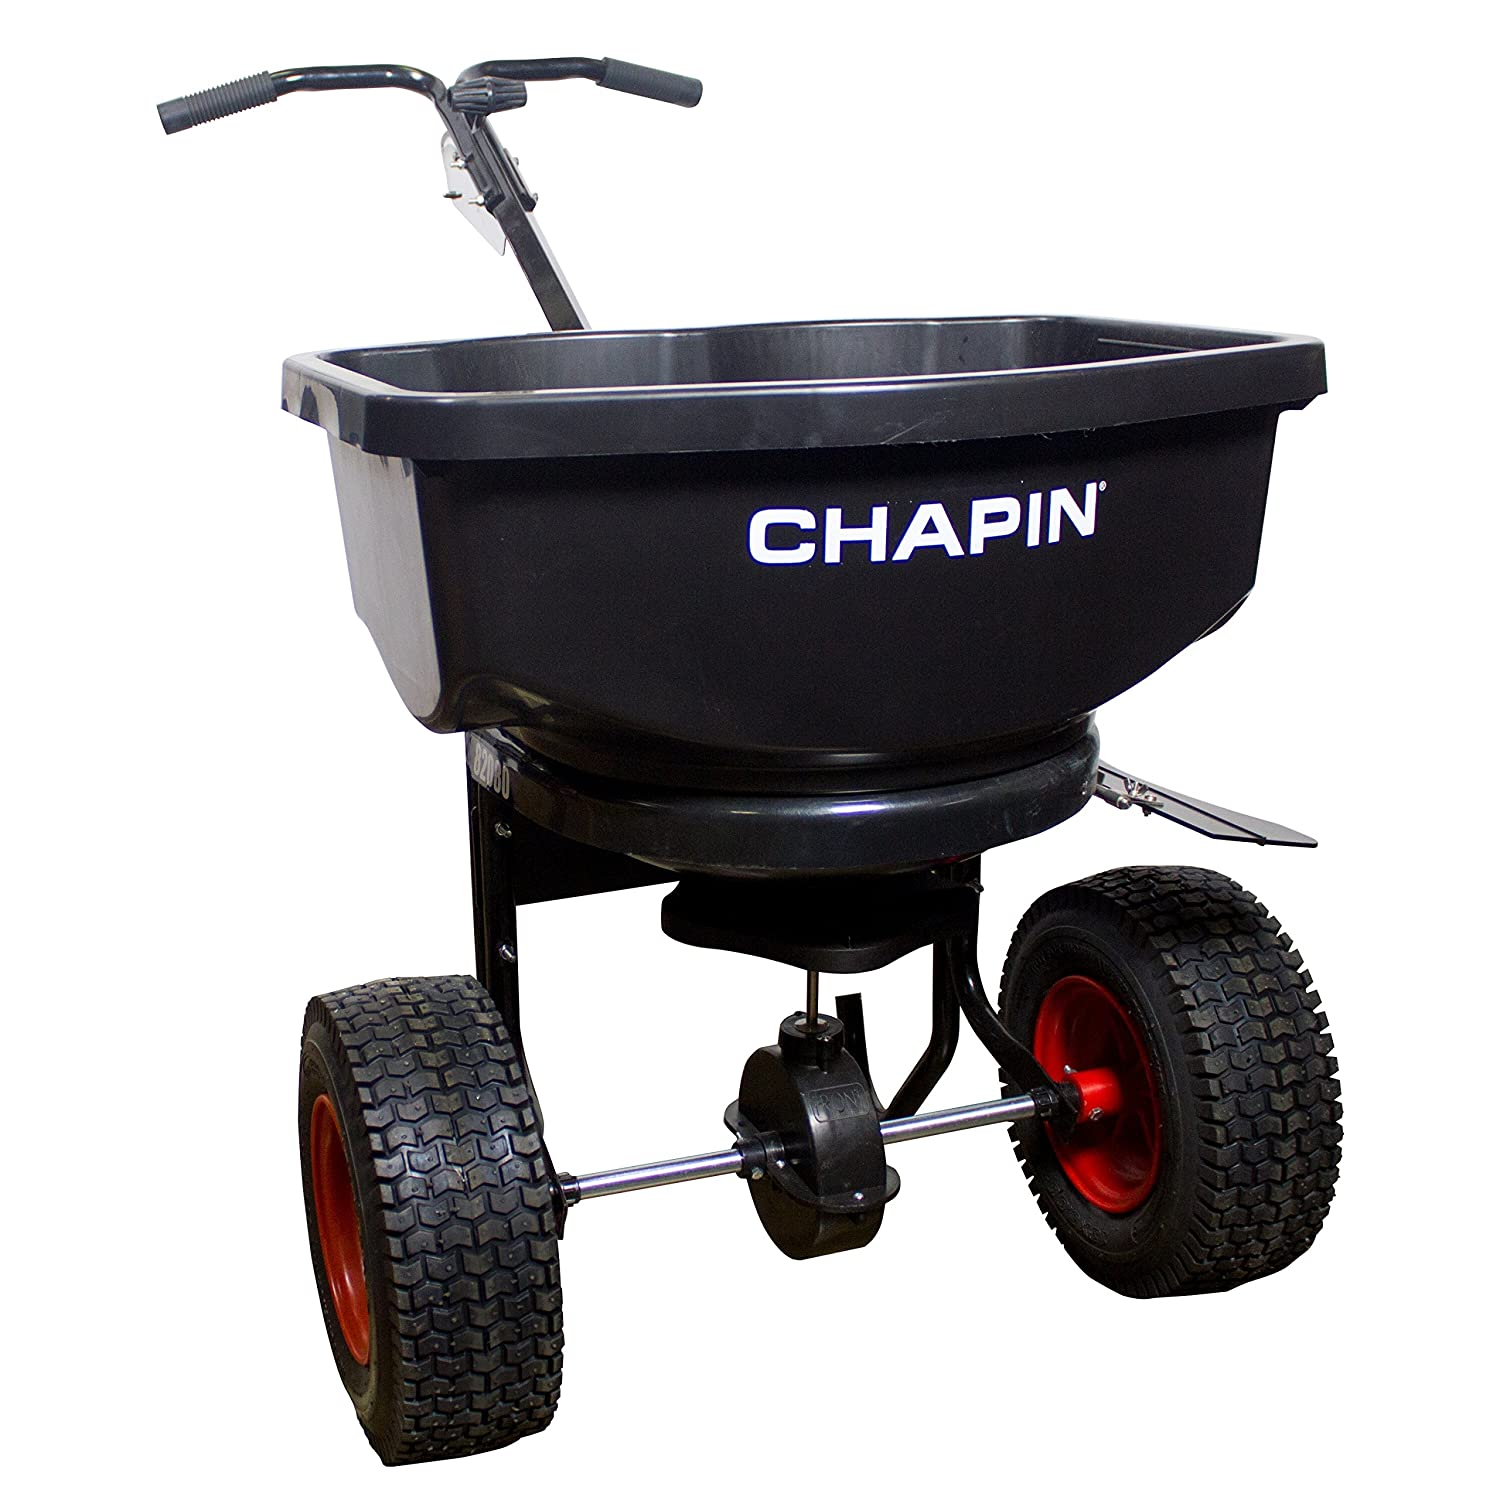 Chapin Professional Spreader - All Season 80-Pound Capacity 00082Z